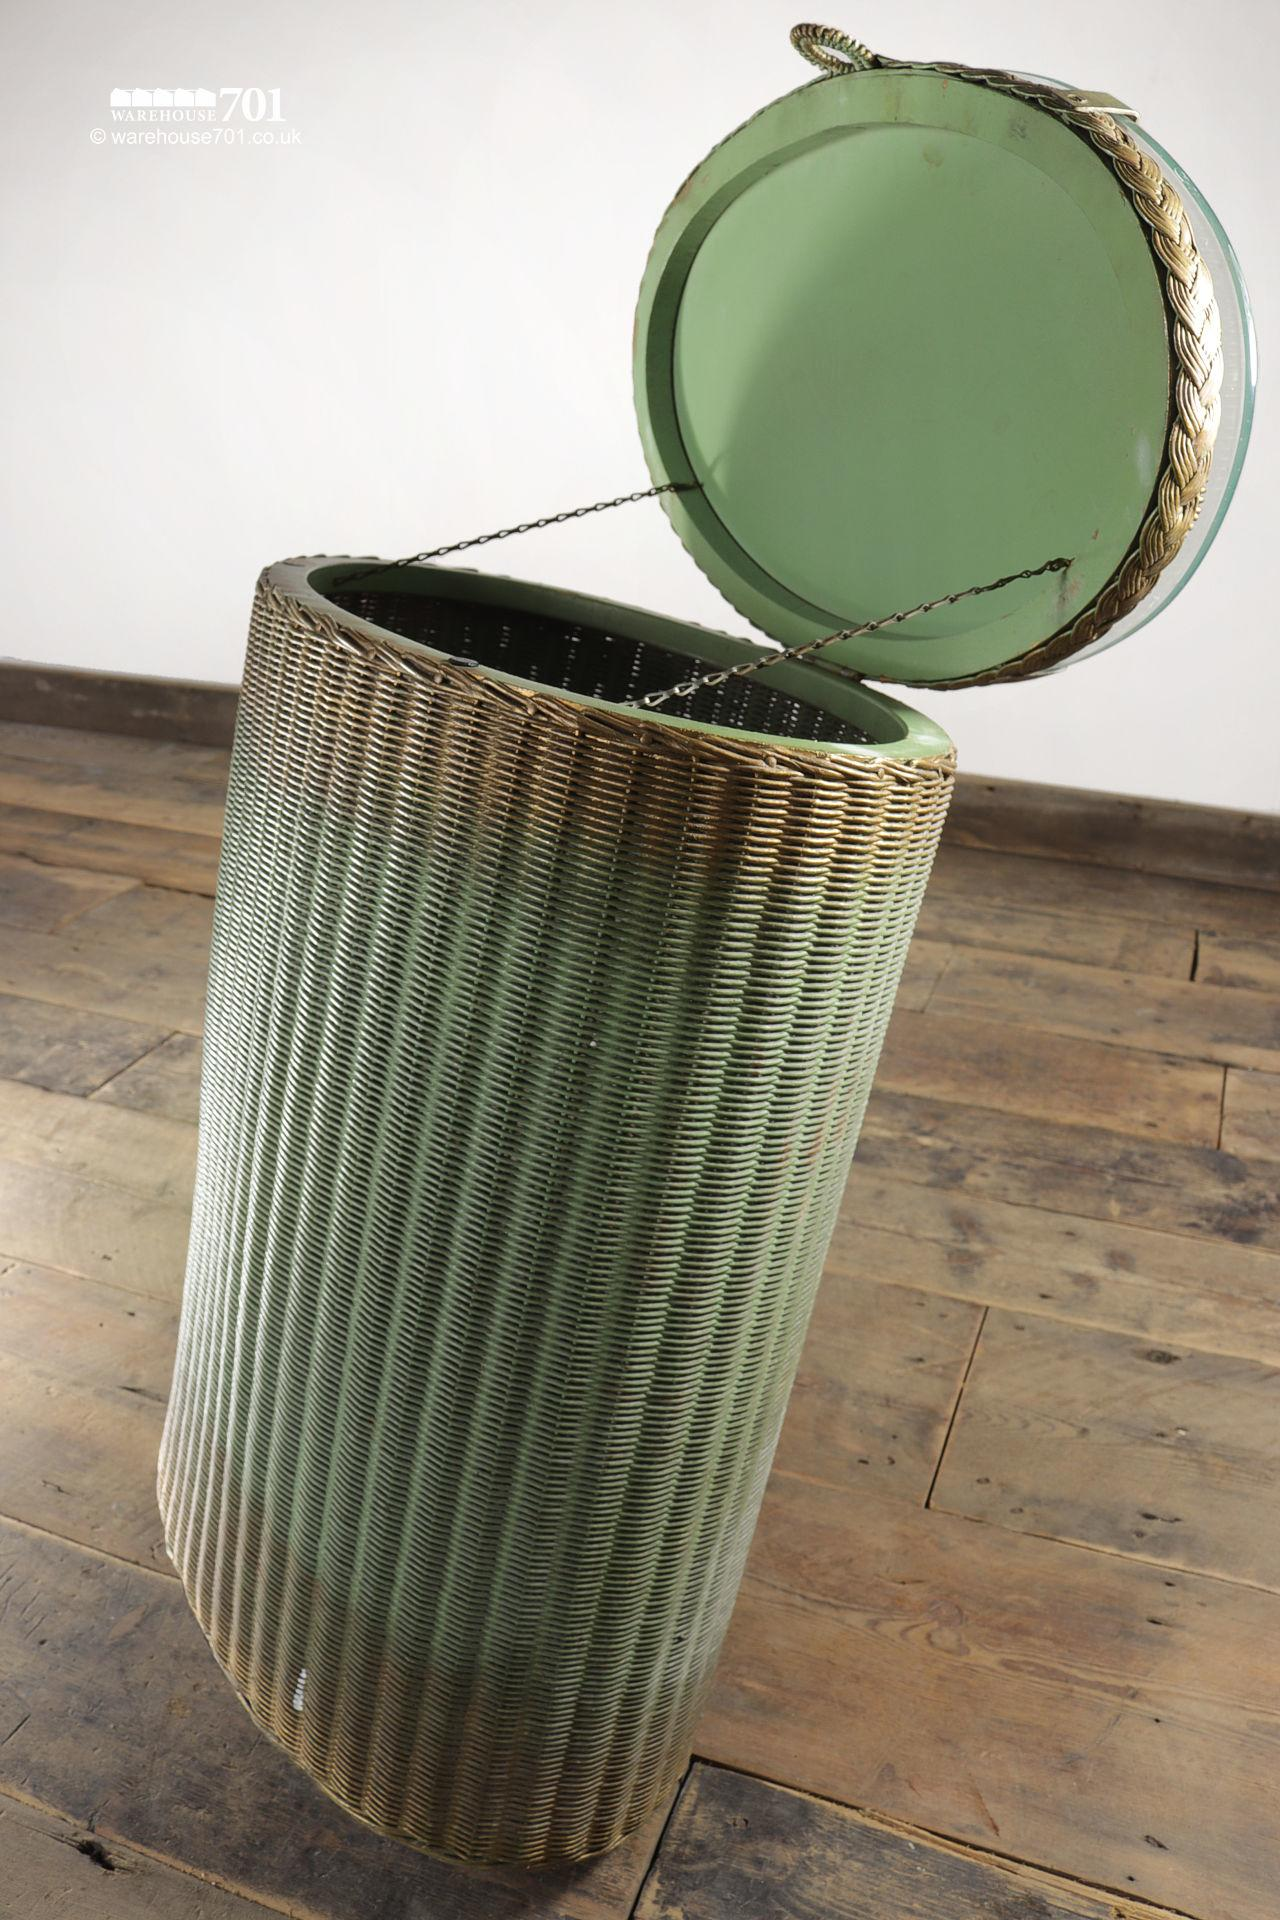 Vintage Elliptical Green Gold Glass Top Laundry Basket